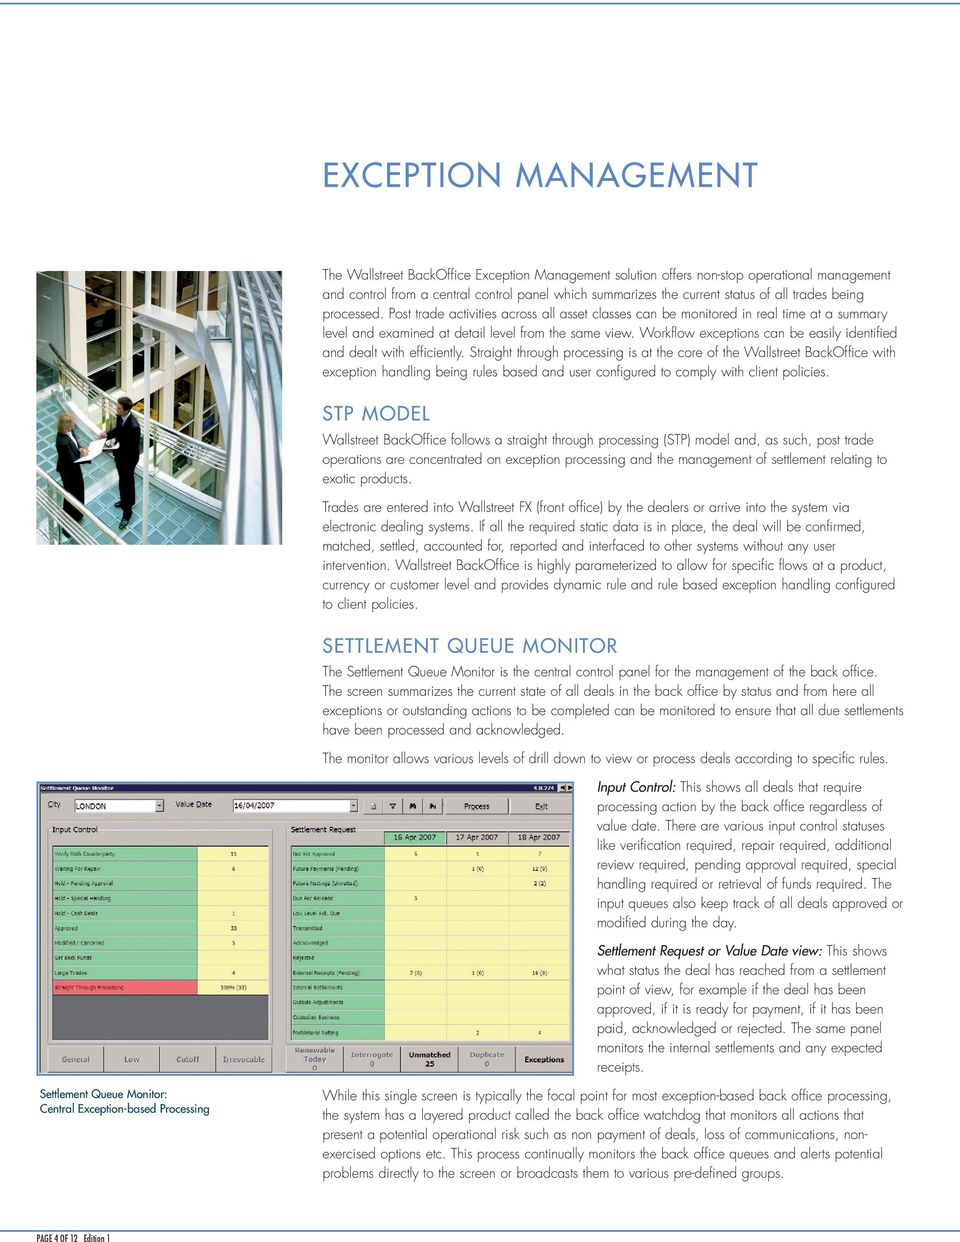 Workflow exceptions can be easily identified and dealt with efficiently.